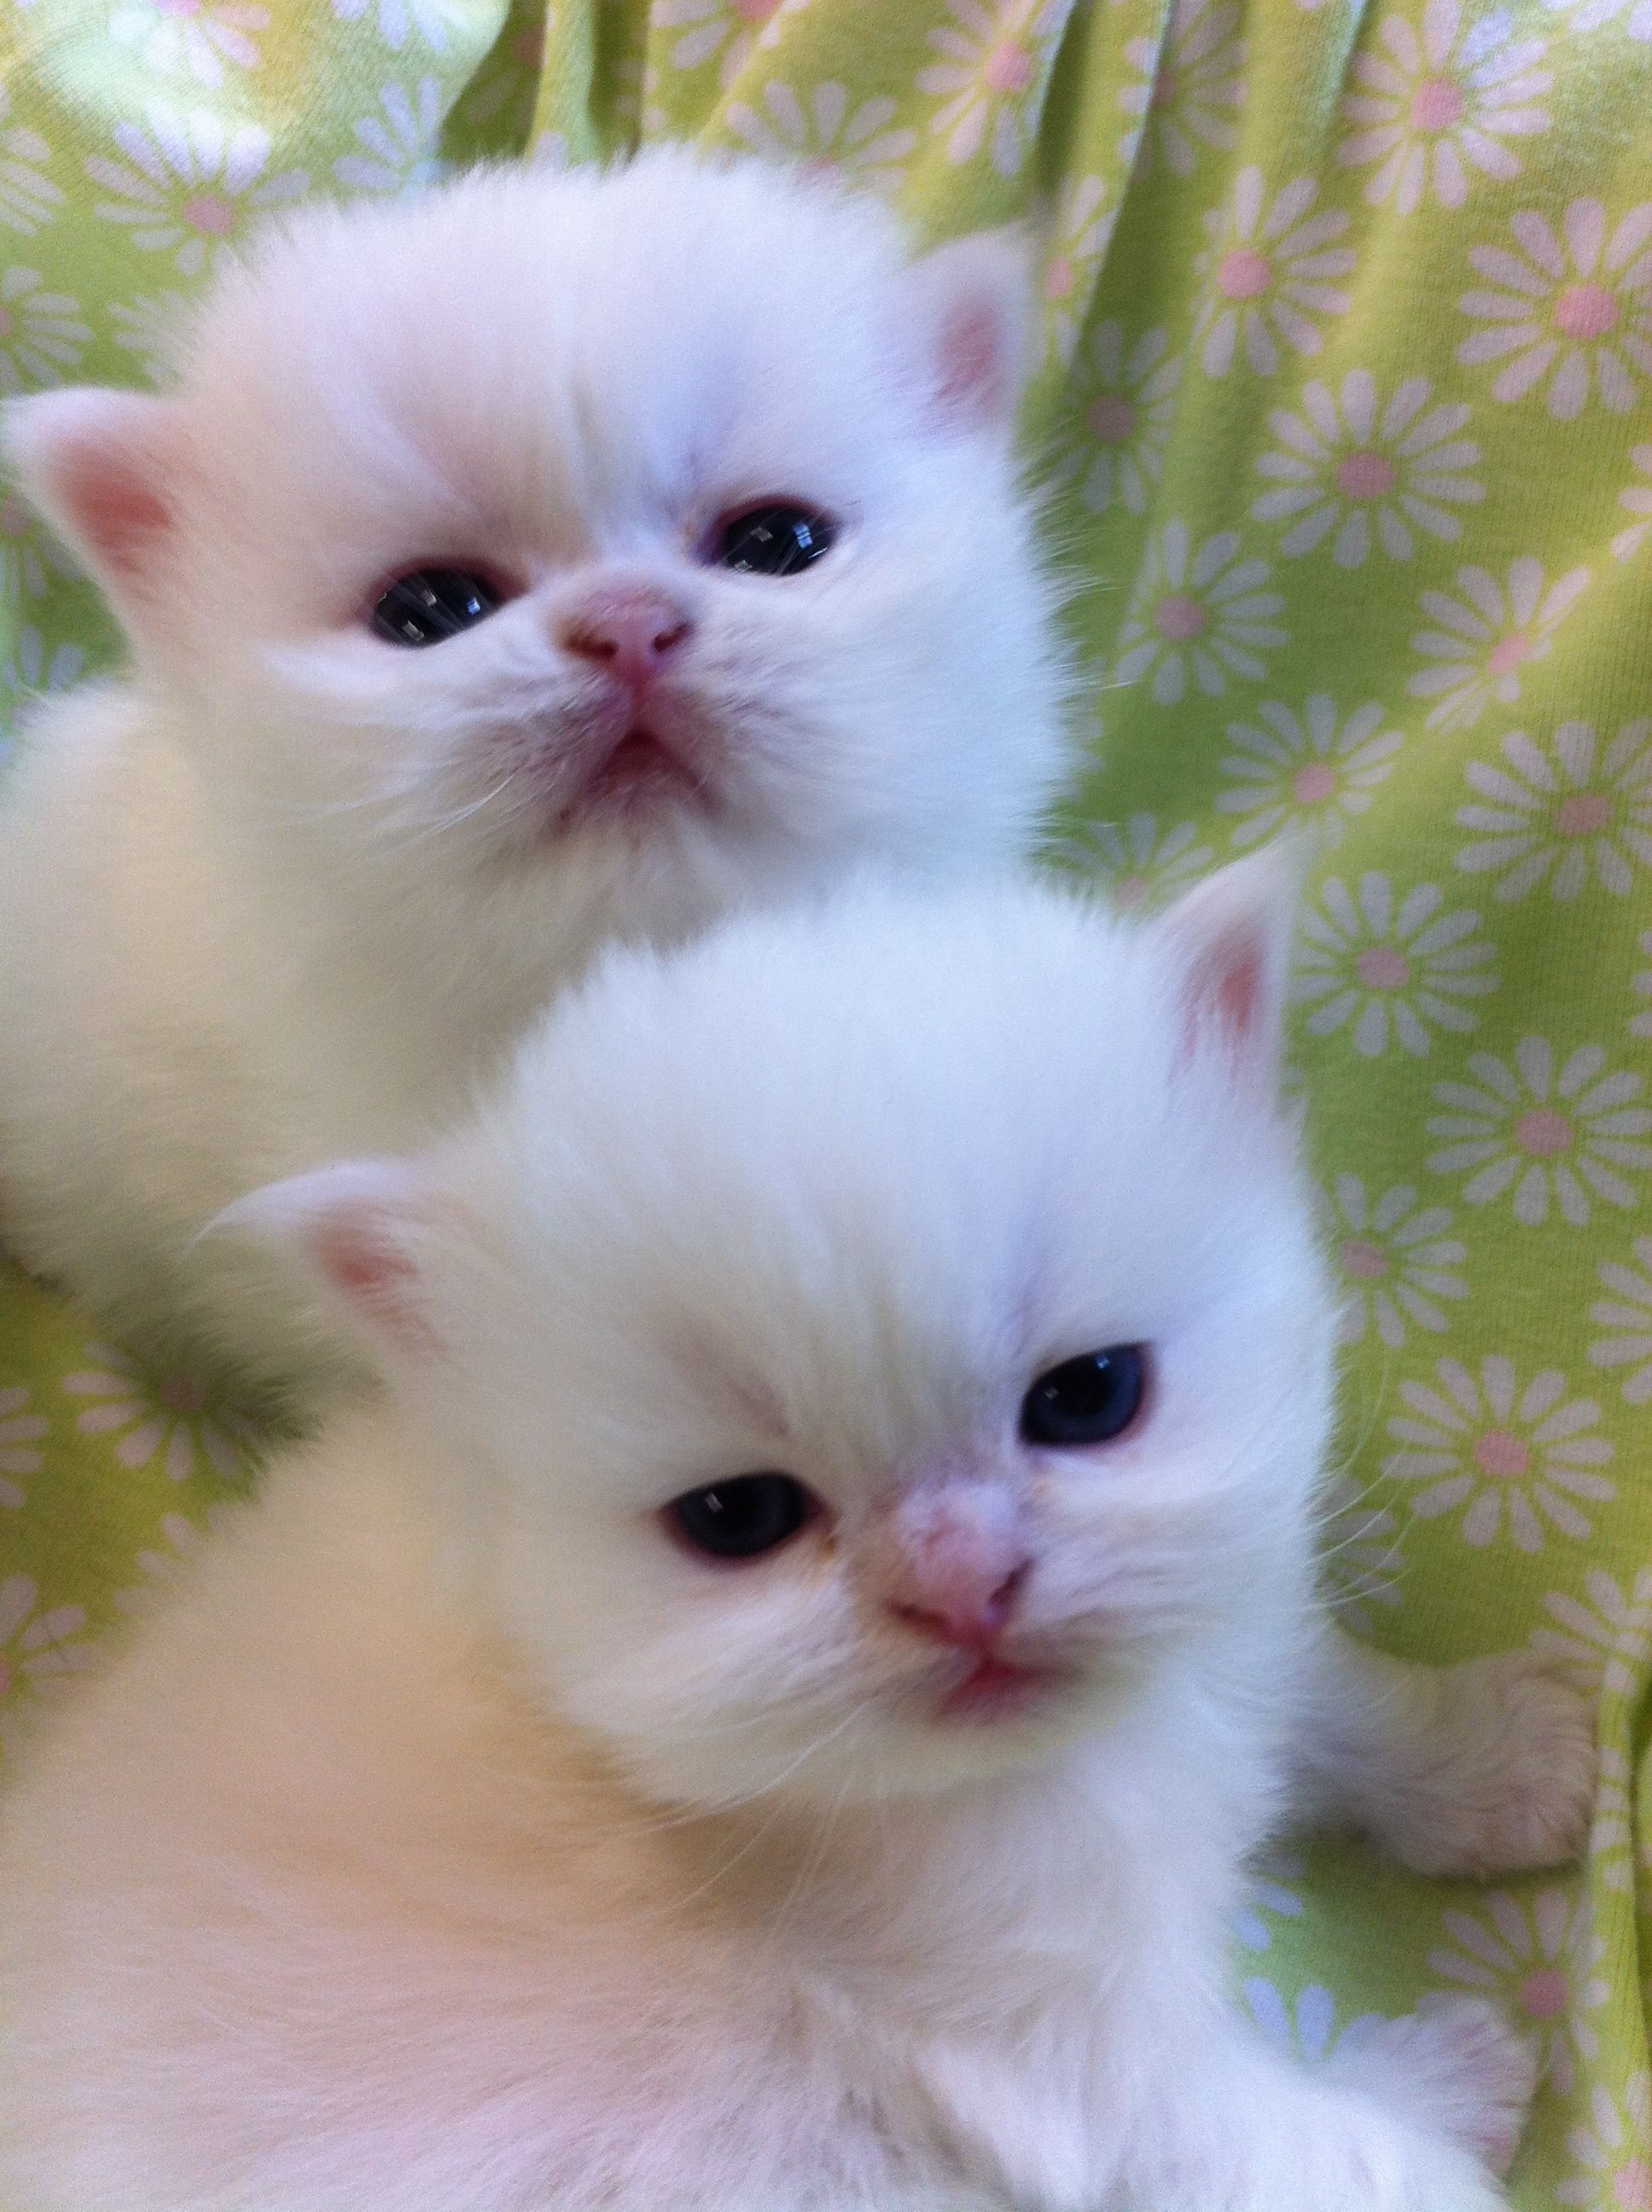 I Love You I Really Do Love From One Of Your Newest Pals On Pinterest The Jacqui 1 2 Of Jacquiand Cute Puppies And Kittens Cute Cats Kittens Cutest